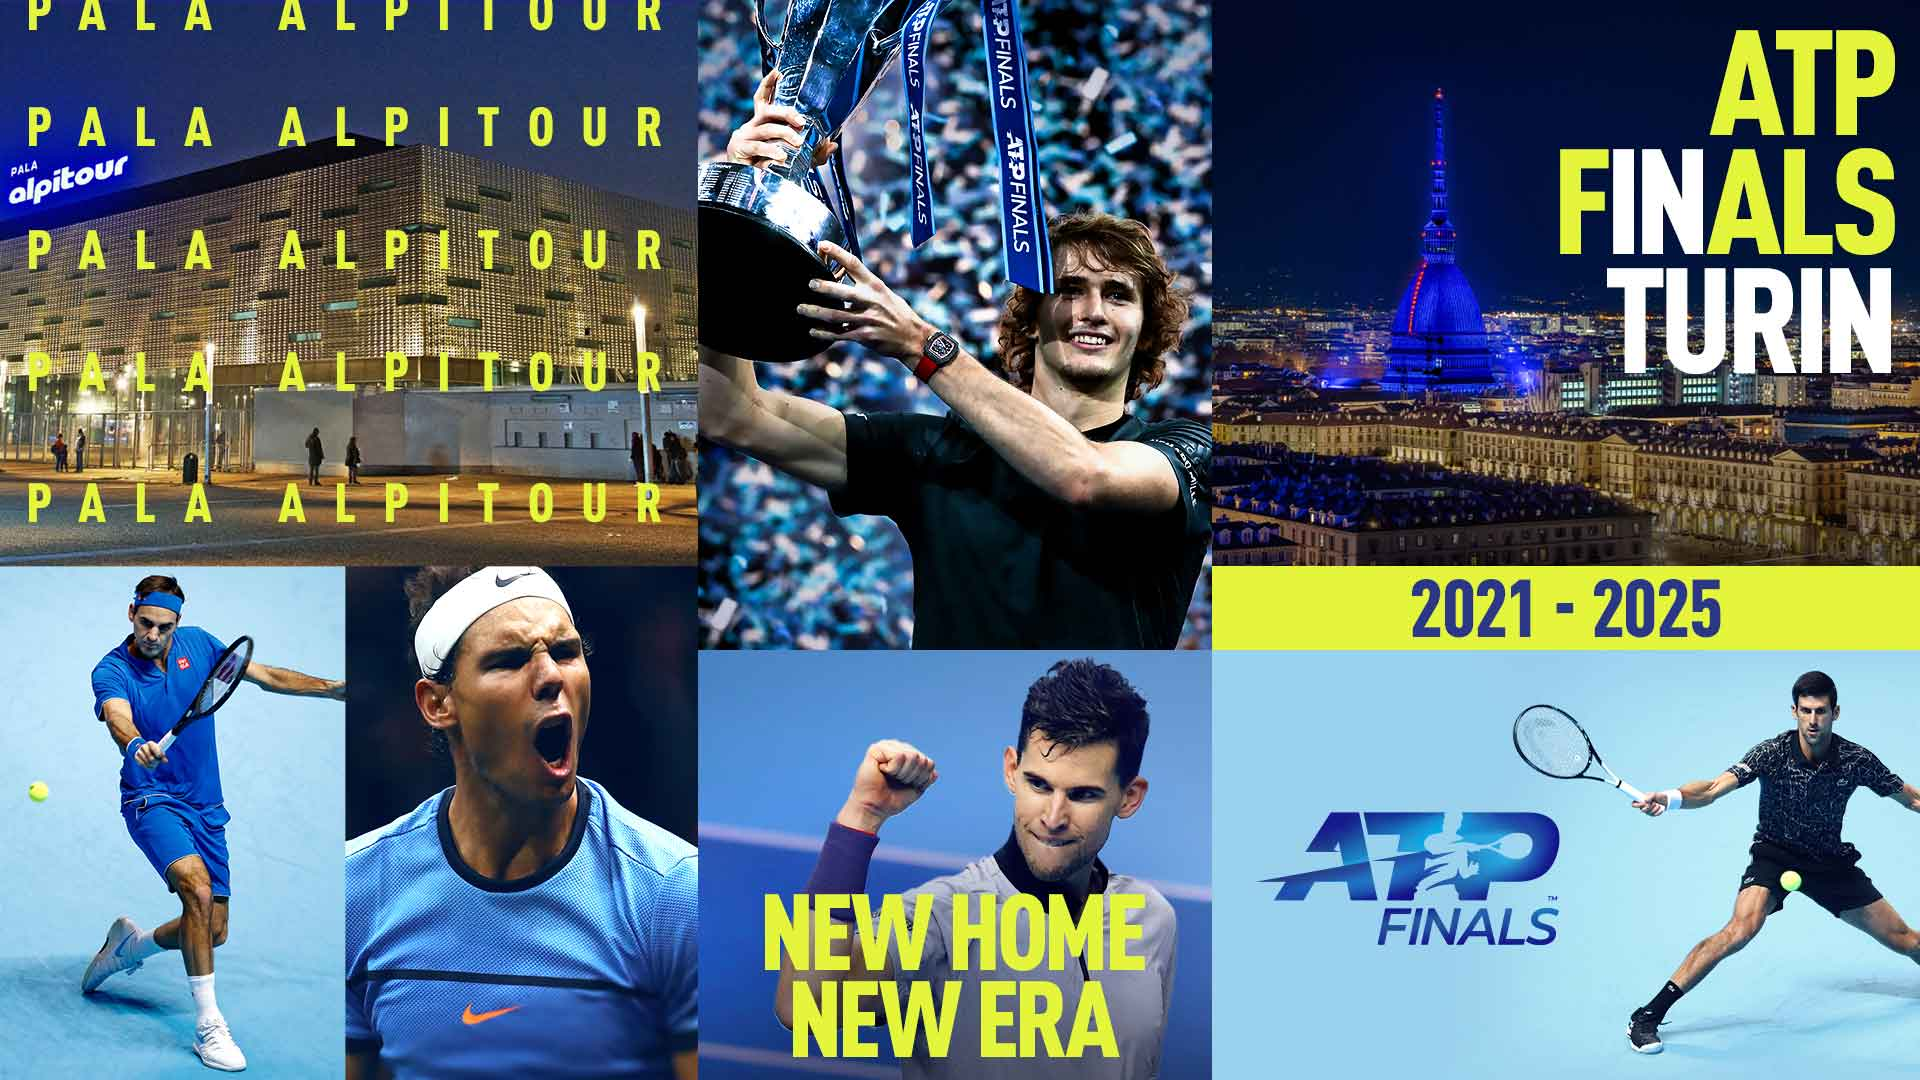 Turin to host ATP Finals from 2021 to 2025